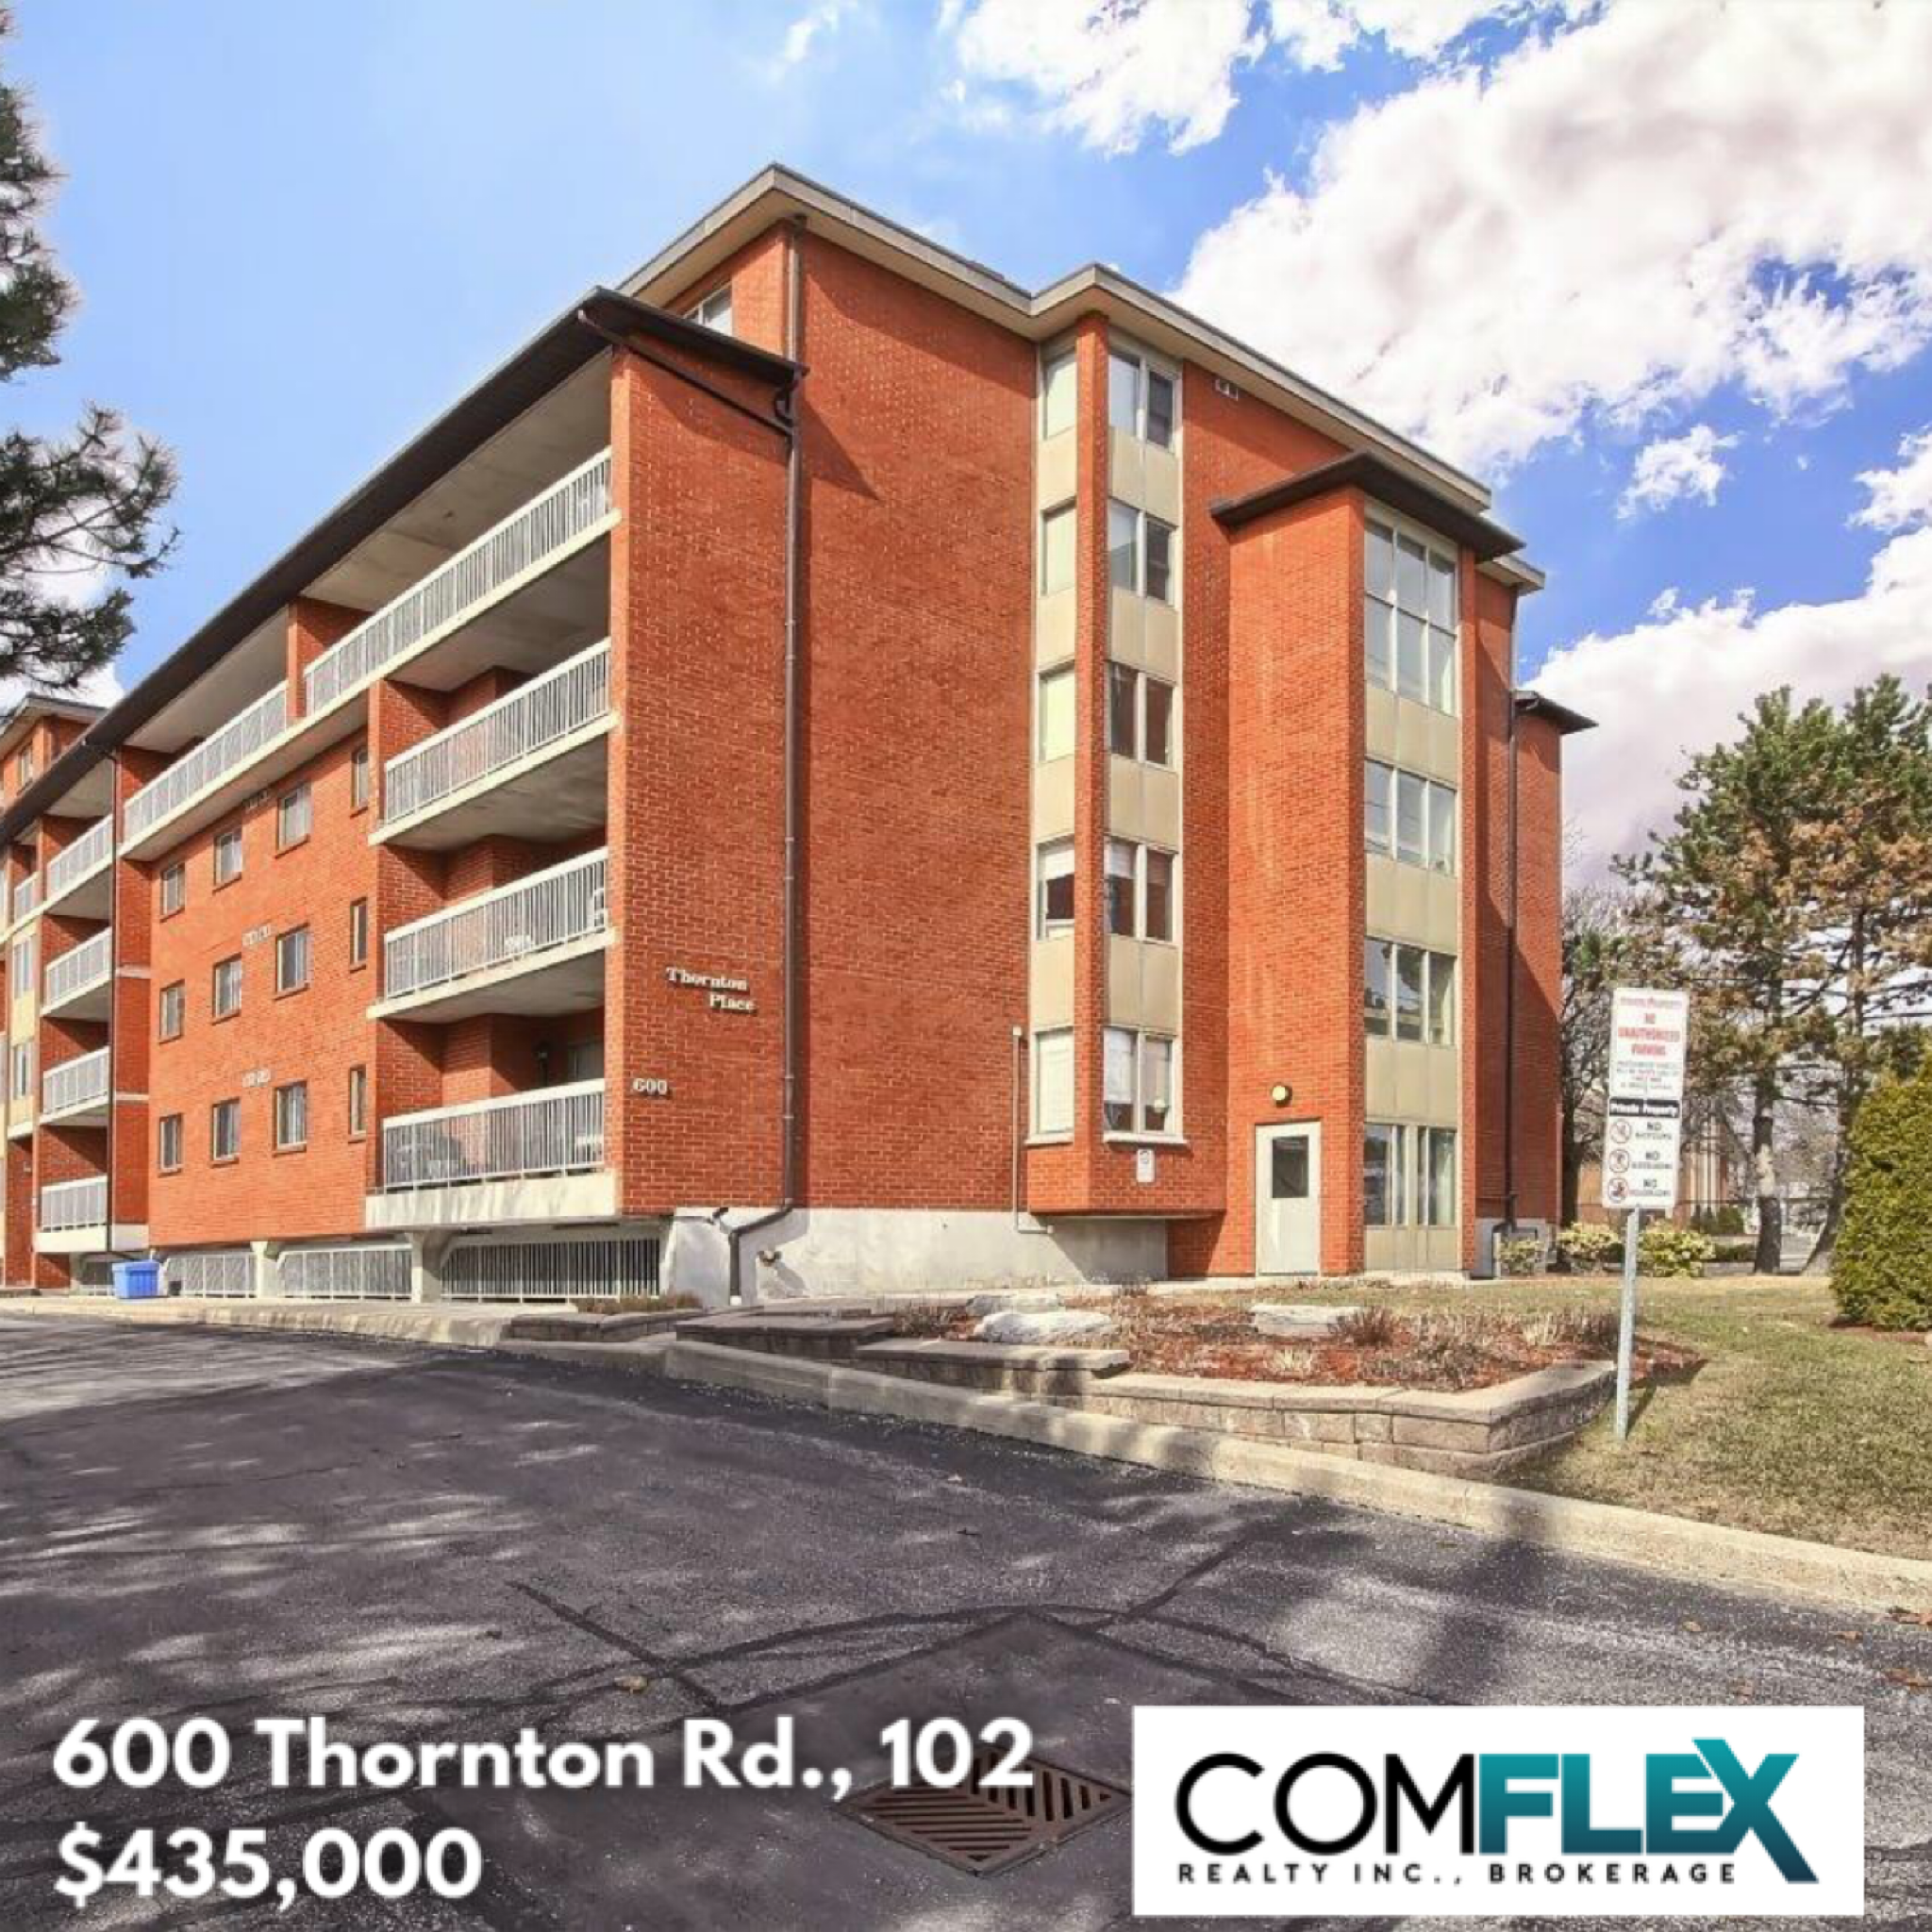 JUST LISTED! 600 THORNTON ROAD #102